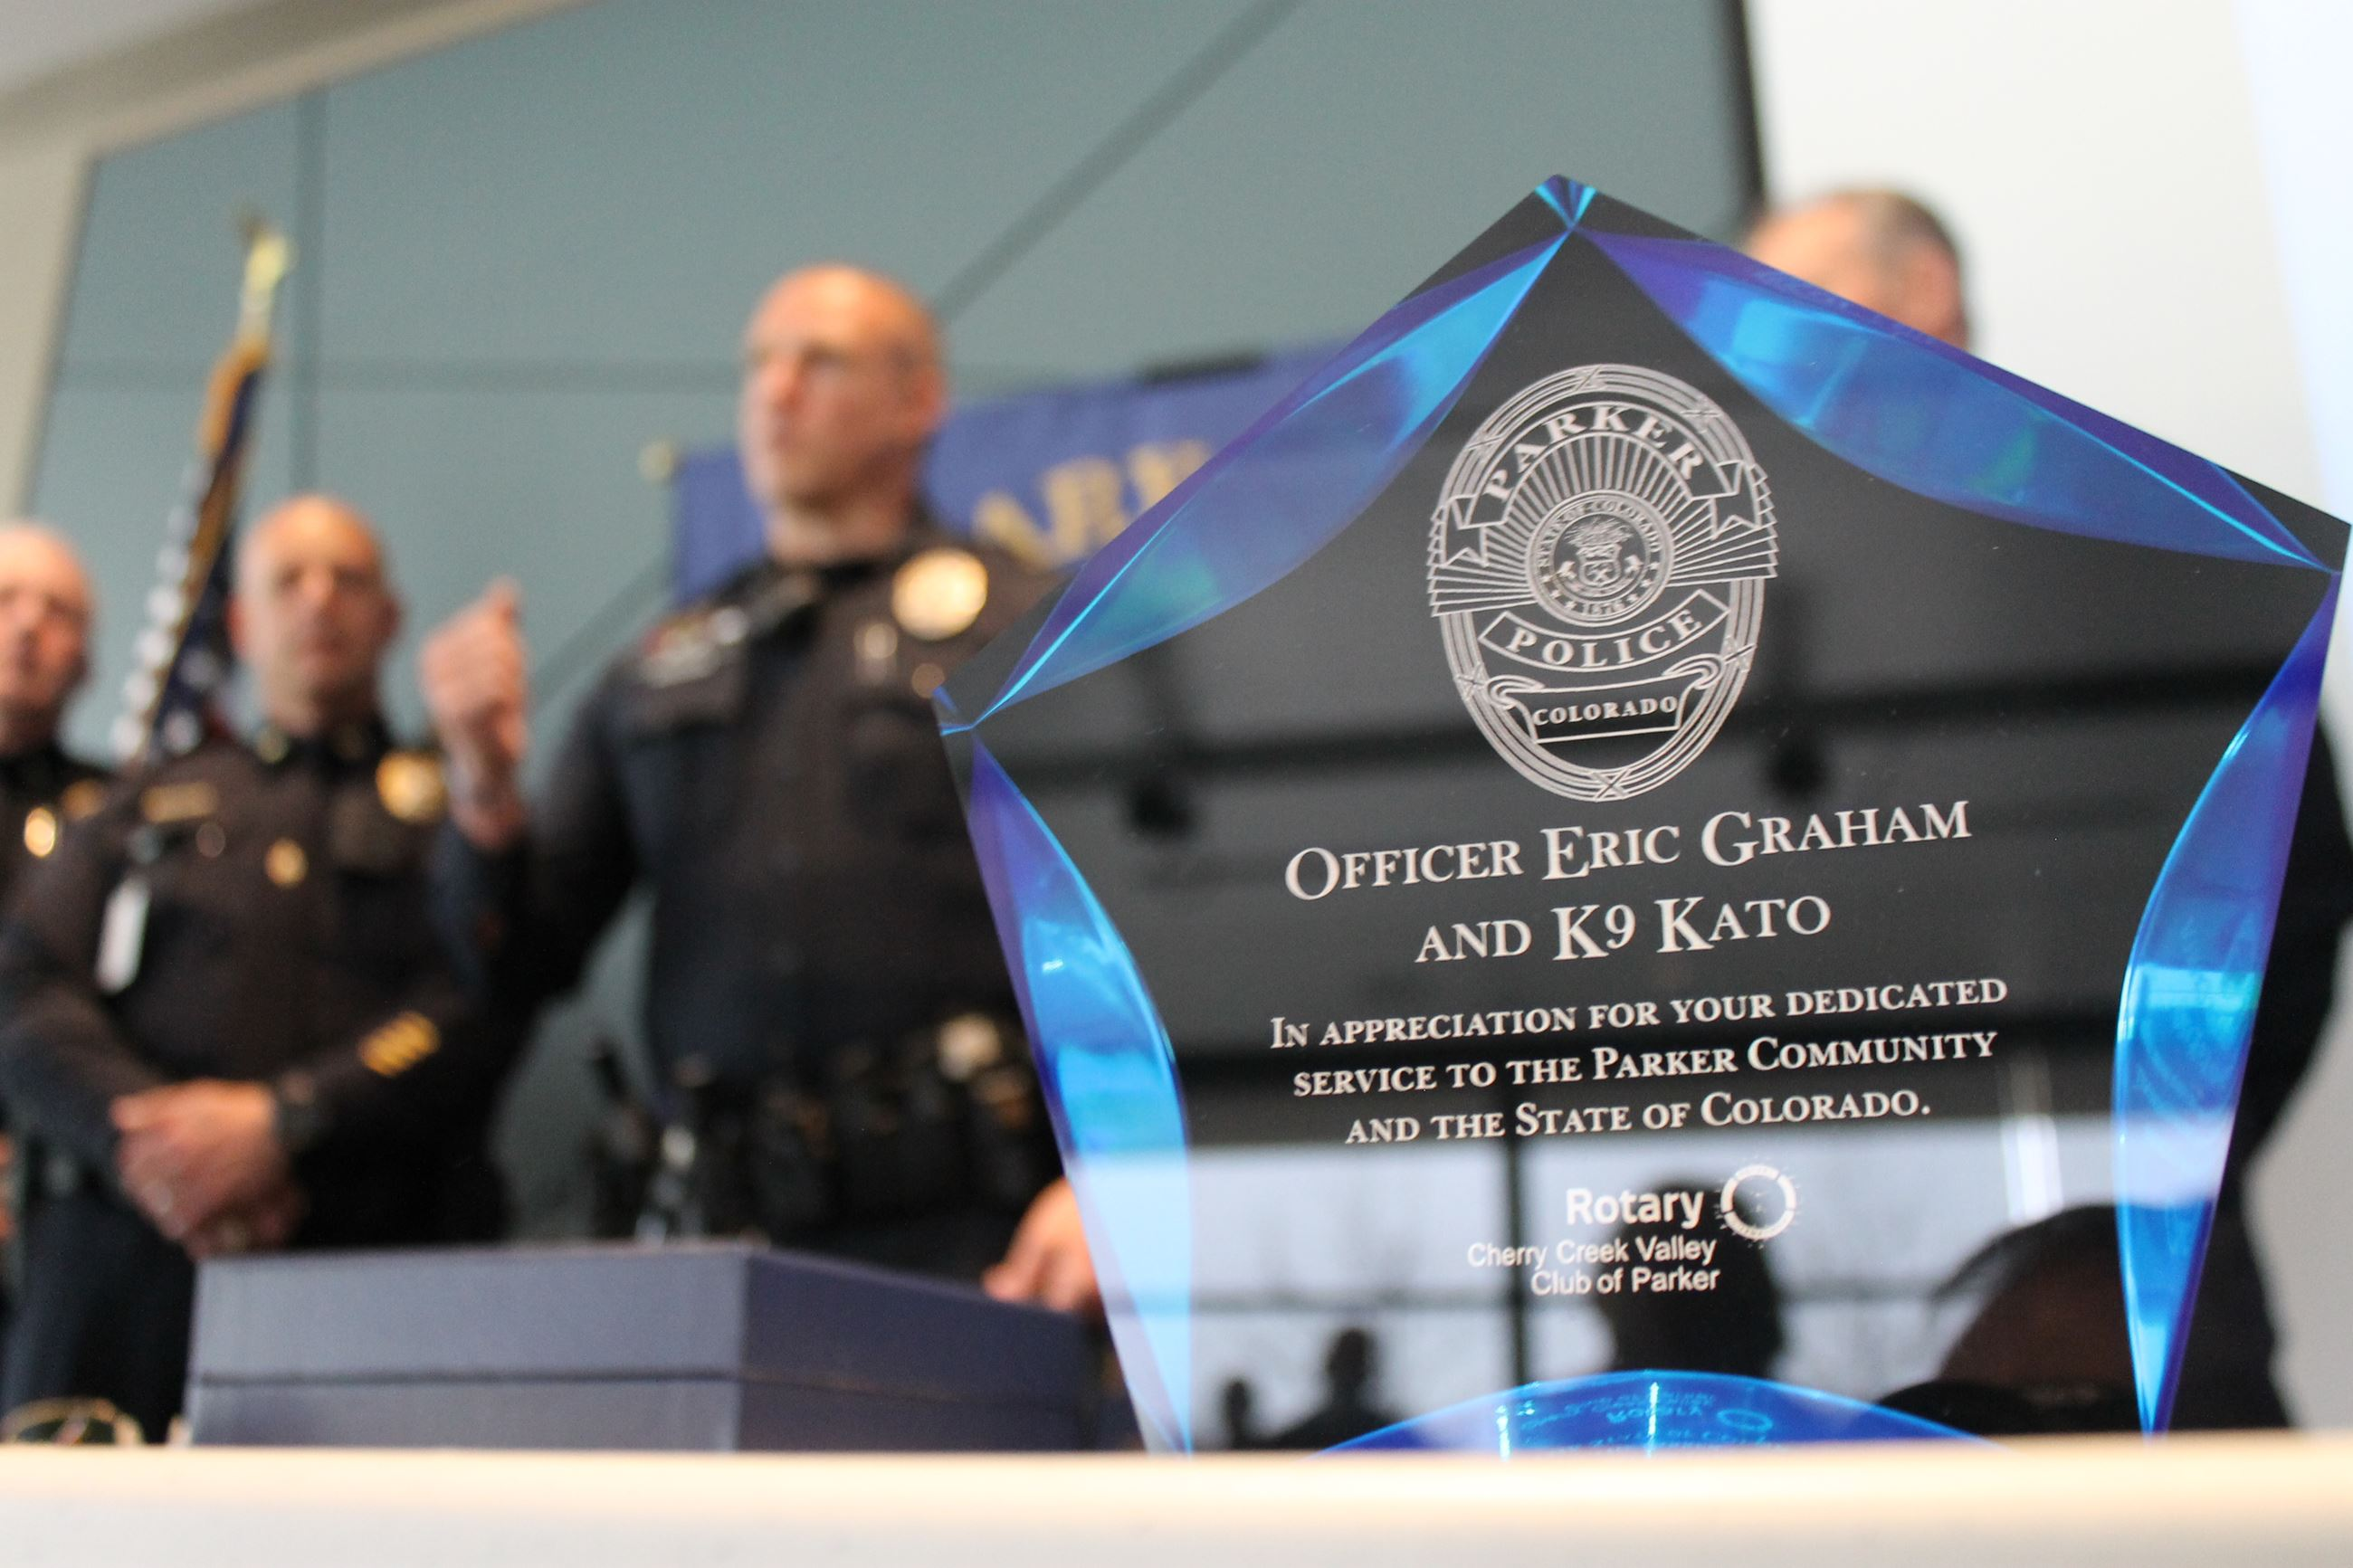 Officer of the Year award trophy